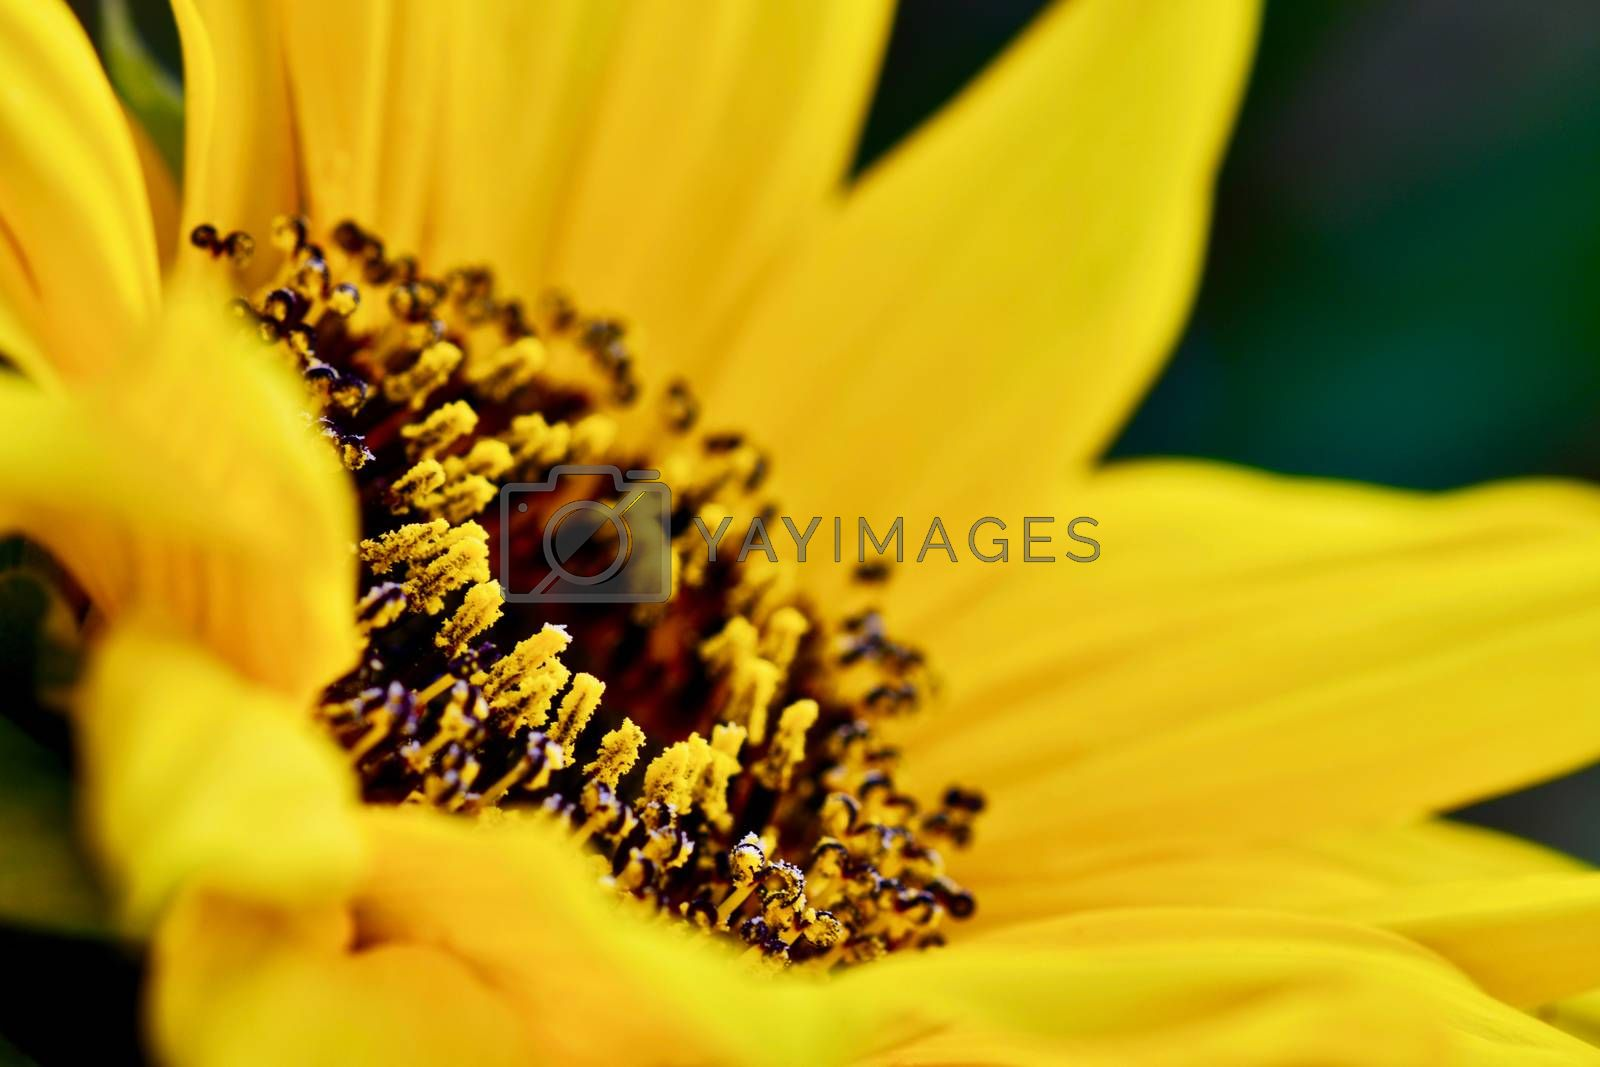 A lovely bright yellow flower; cheerful and nice sunflower